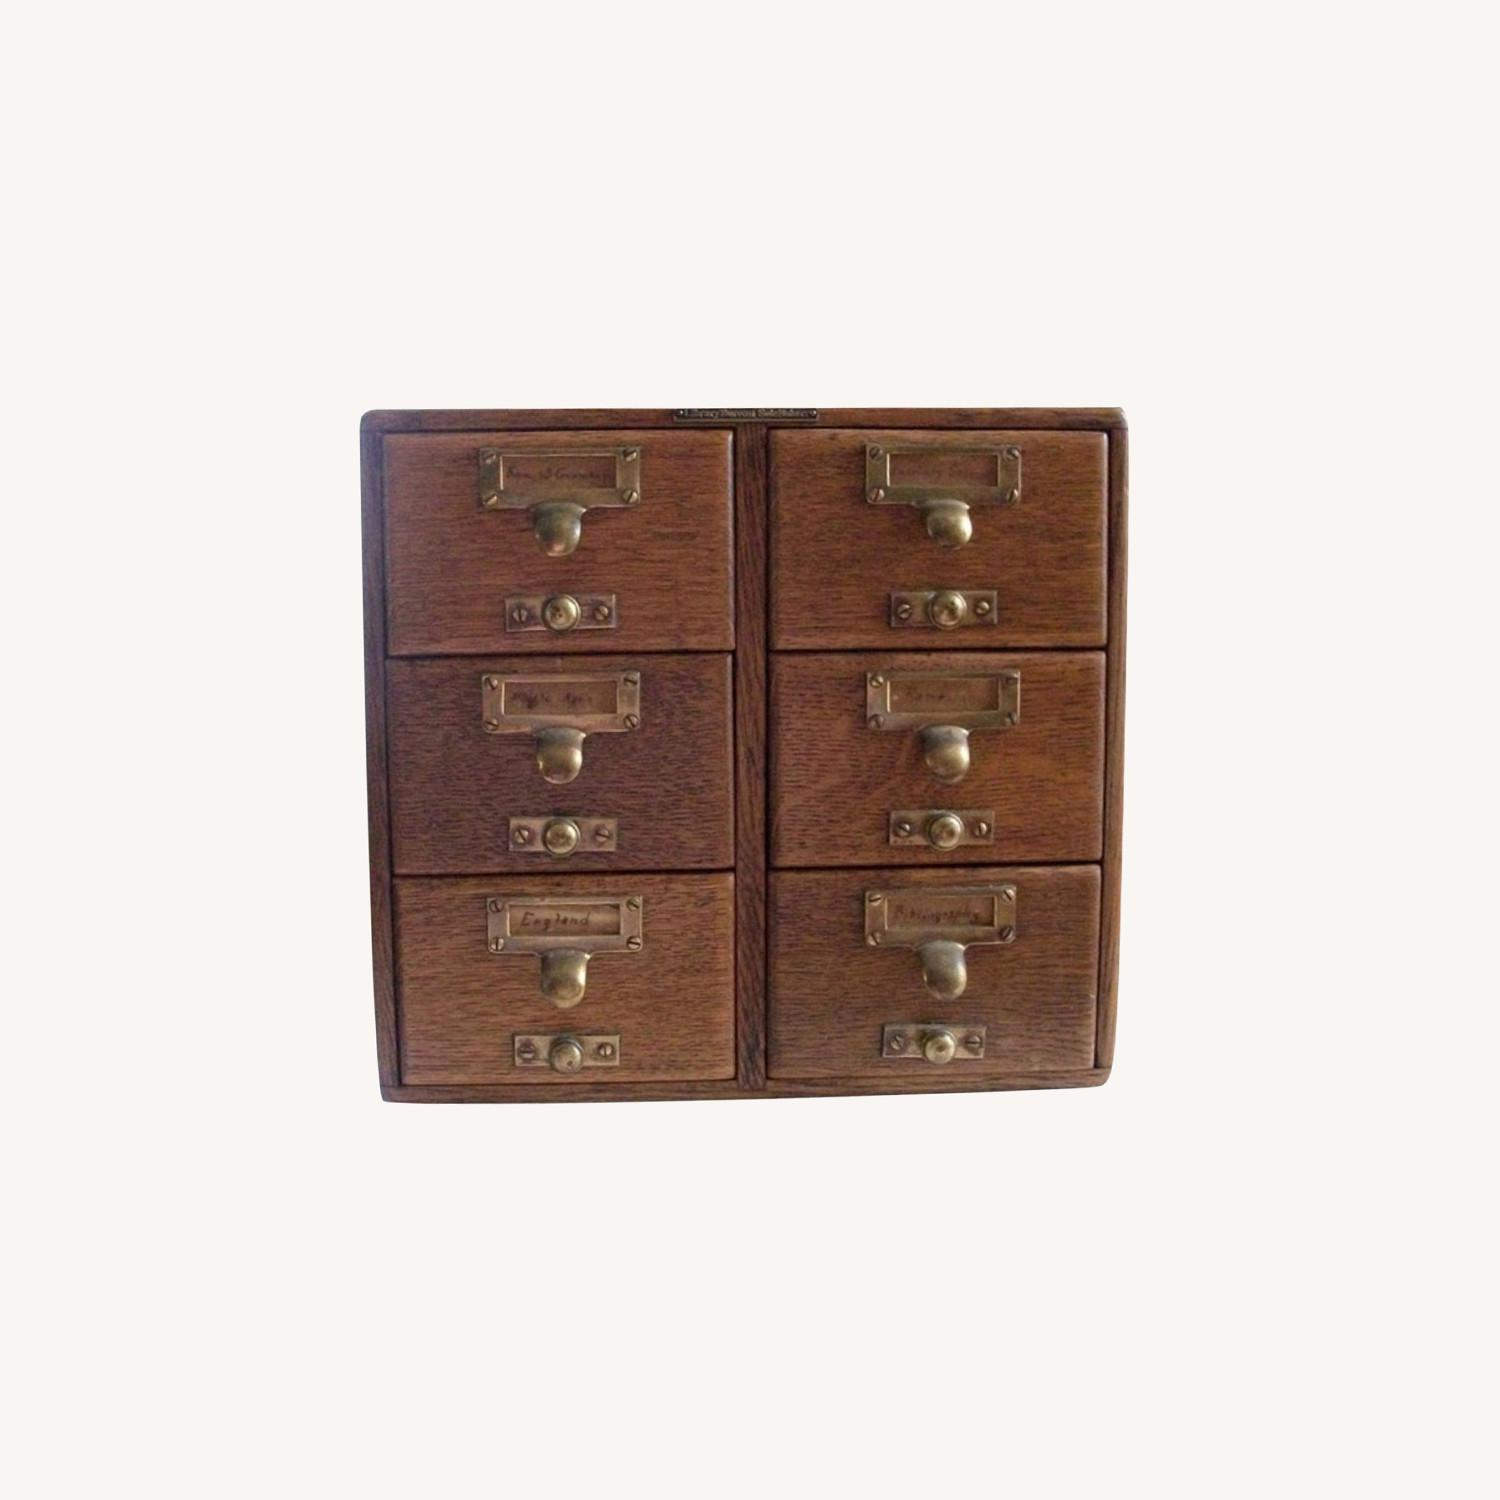 Antique 6 Drawer Library Card Catalog Circa 1890 - image-0